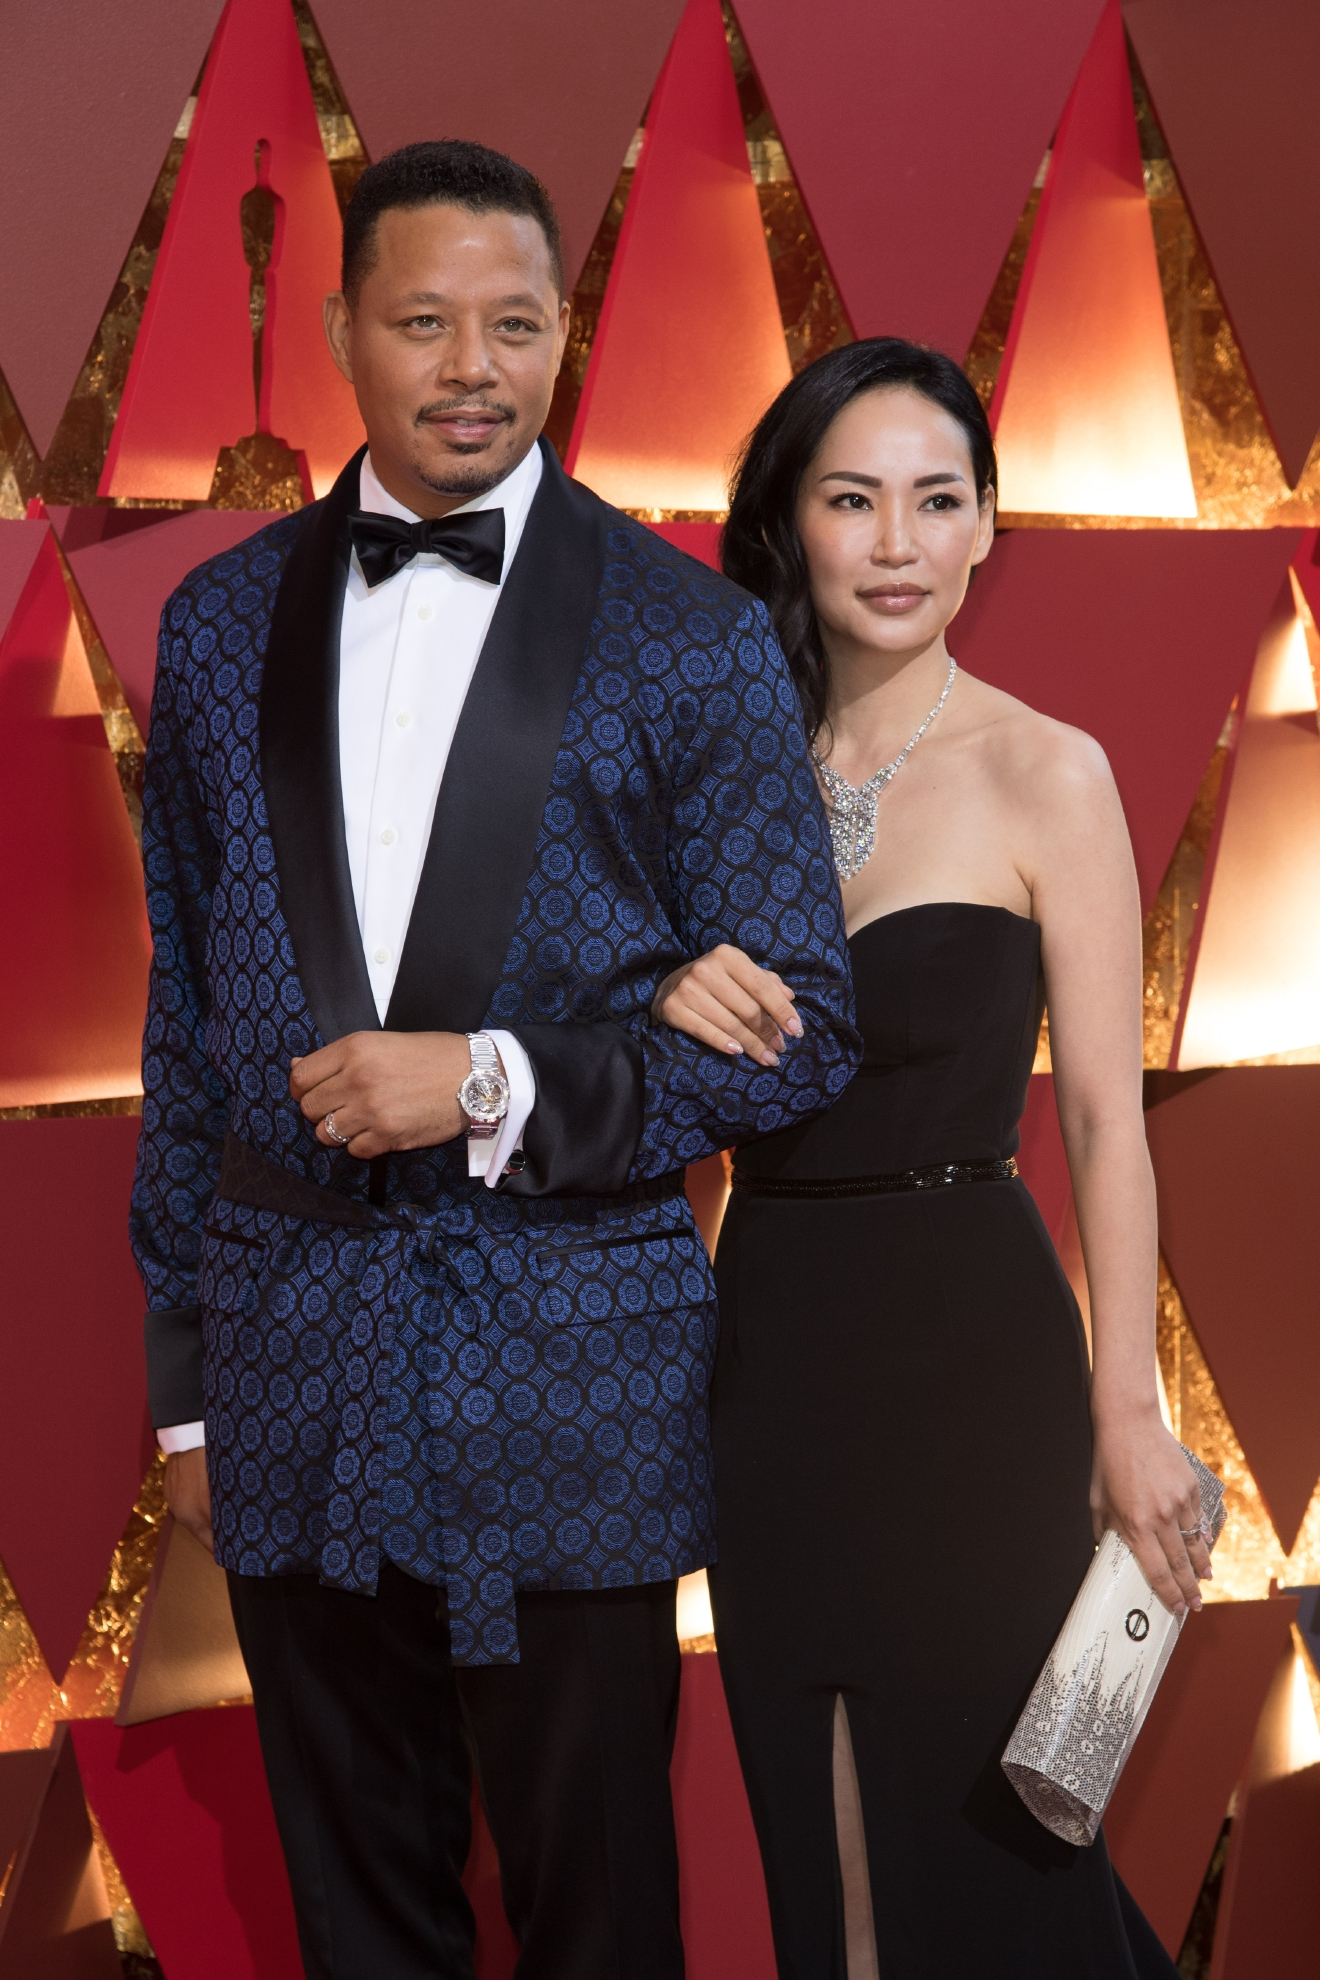 #8: Terrence Howard. Terrence work a smoking jacket to the Oscars. So he gets #9. (Image: AMPAS)